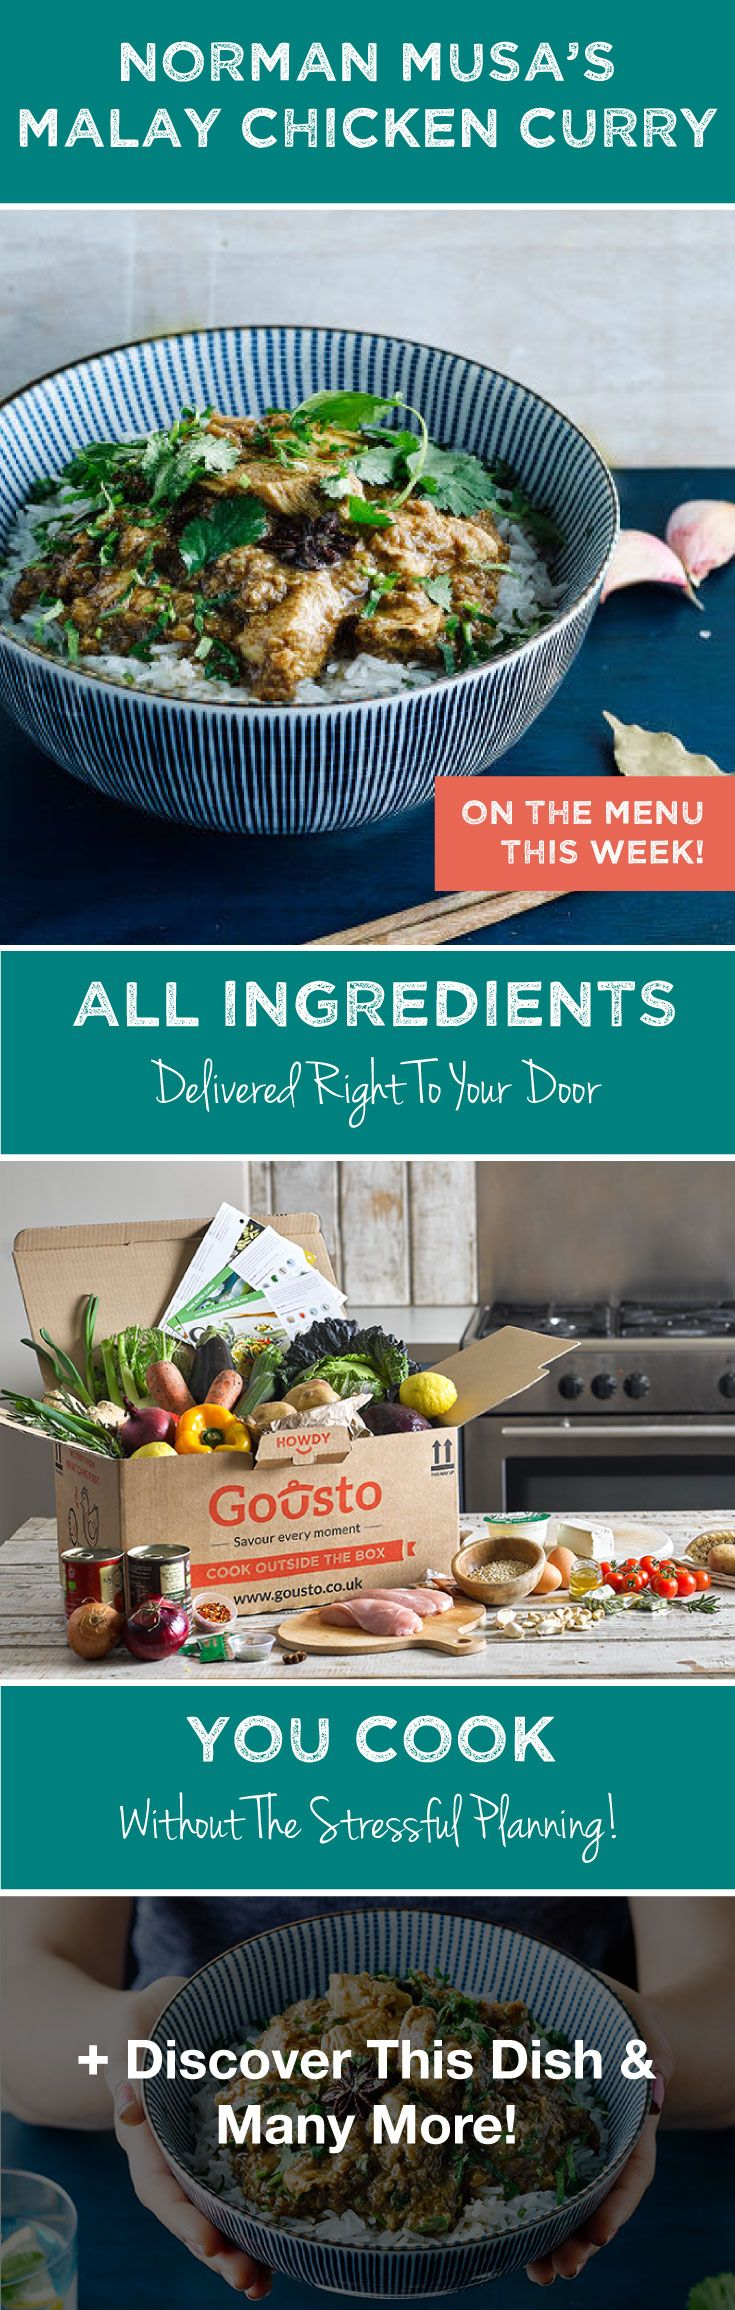 Get £25 OFF your first order! Discover amazing new recipes with perfectly pre-portioned ingredients delivered right to your door. Click to see what you could be cooking this week!